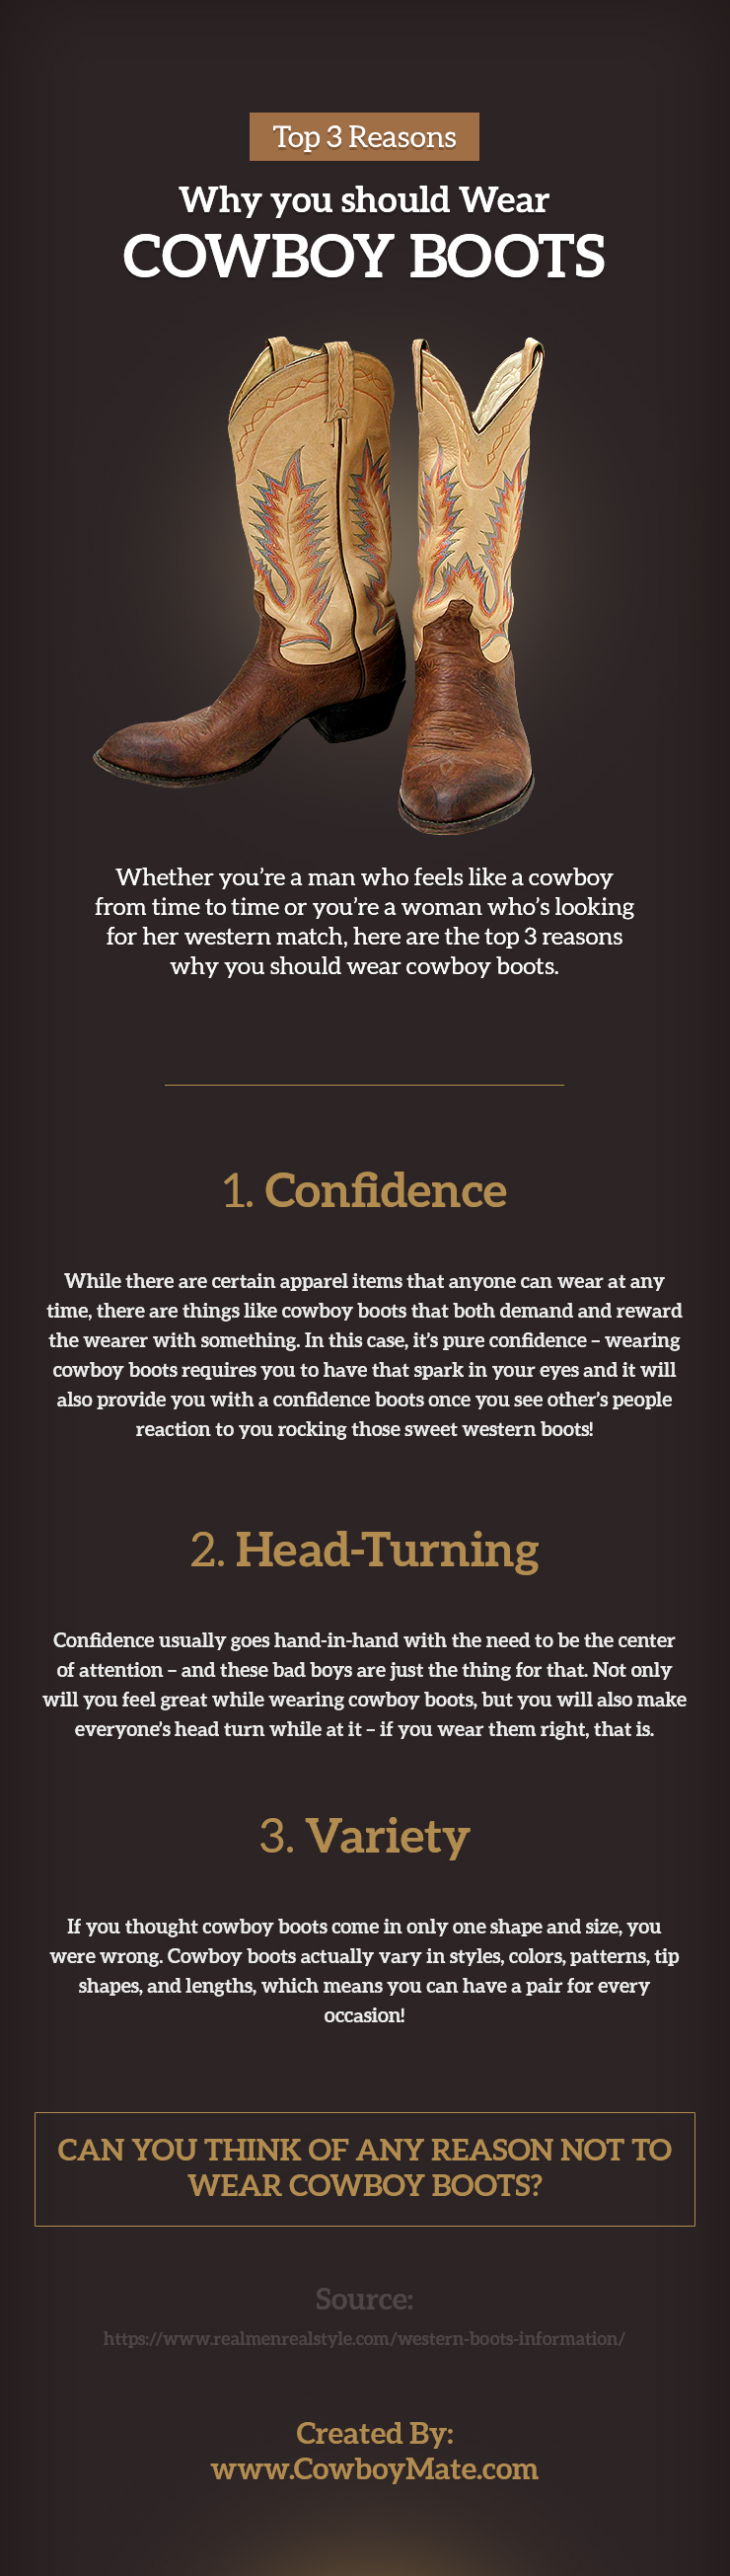 Top 3 Reasons Why you should Wear Cowboy Boots